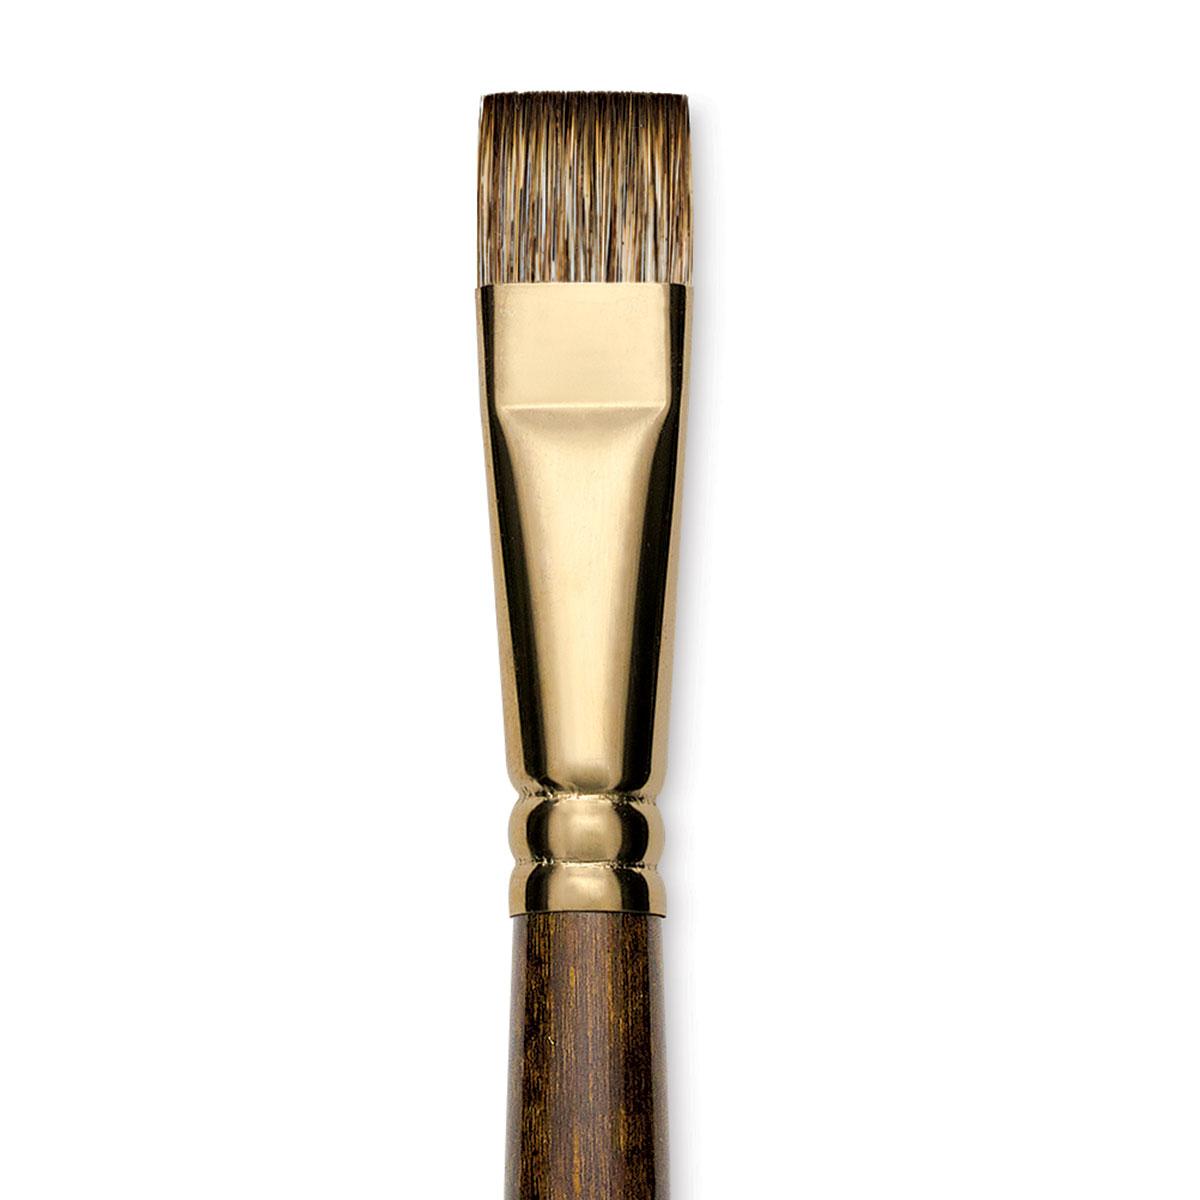 Simply Simmons Filbert Brush #10